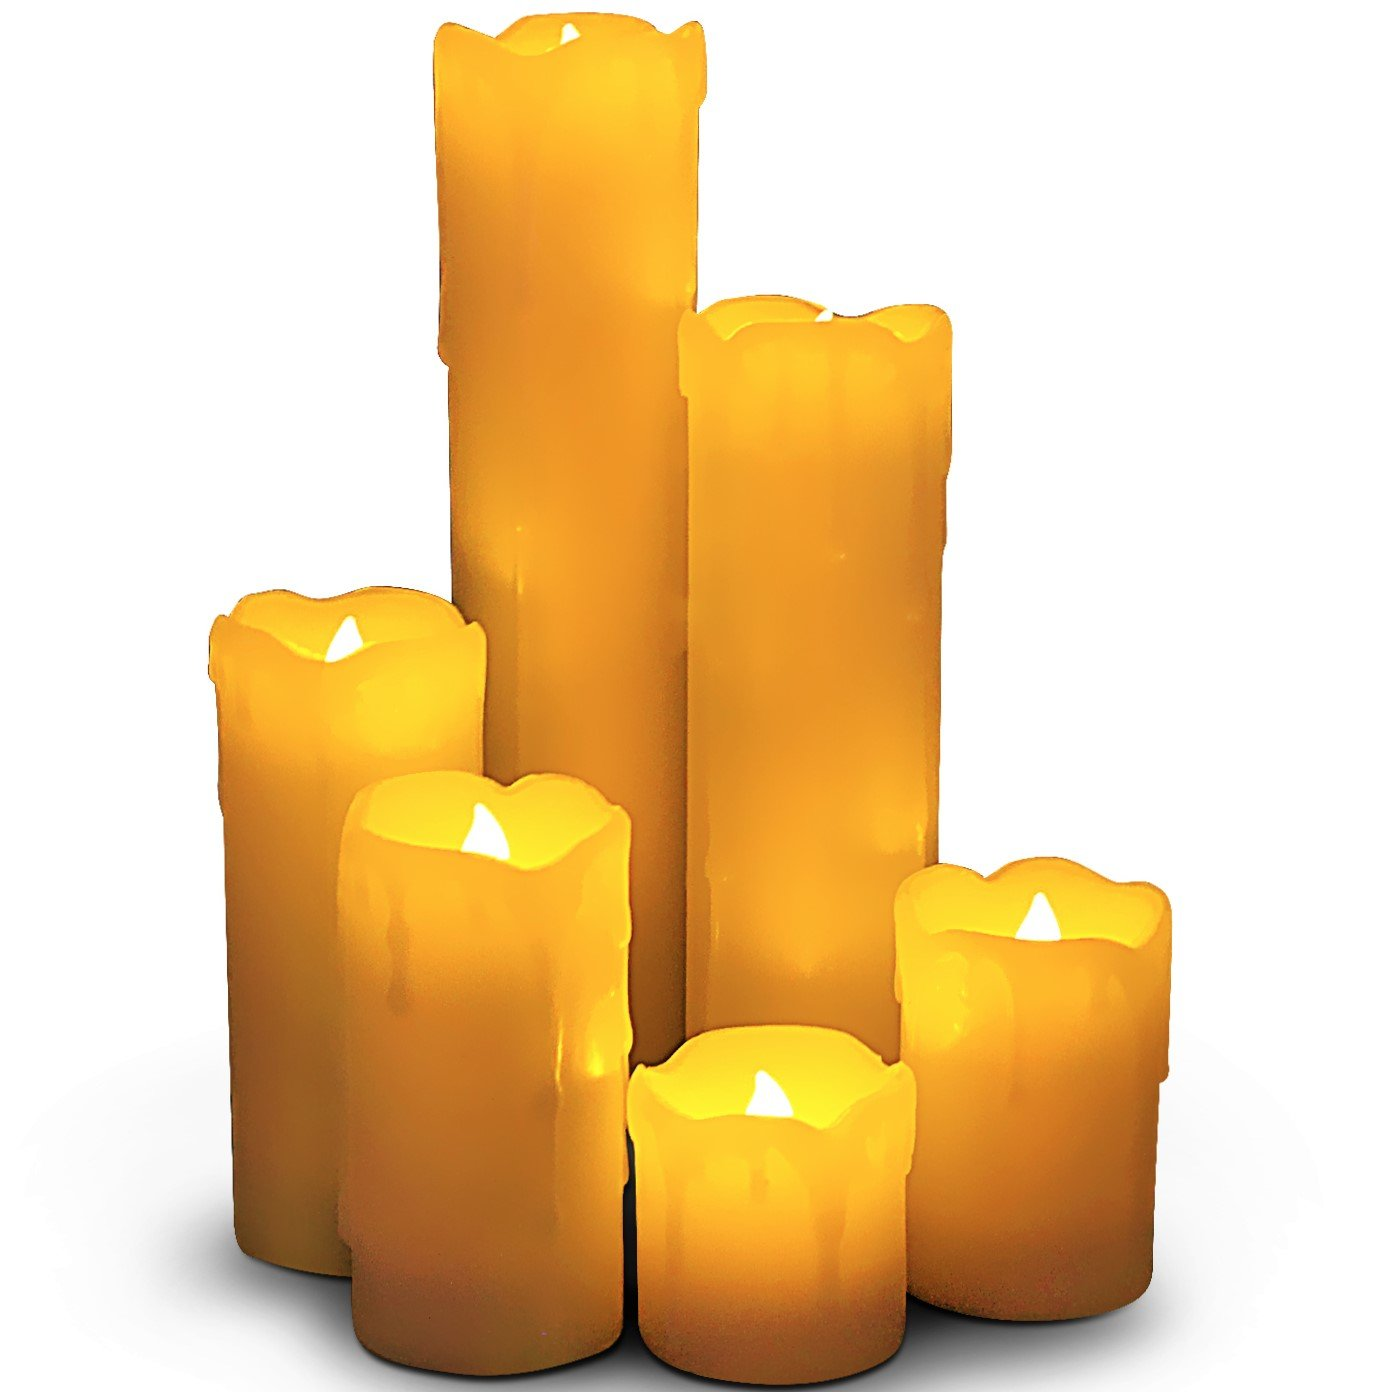 LED Lytes Timer LED Candles - Slim Set of 6, 2'' Wide and 2''- 9'' Tall, Ivory dripping Wax and Flickering Amber Yellow Flame Battery Operated Electric Candle by LED Lytes (Image #1)